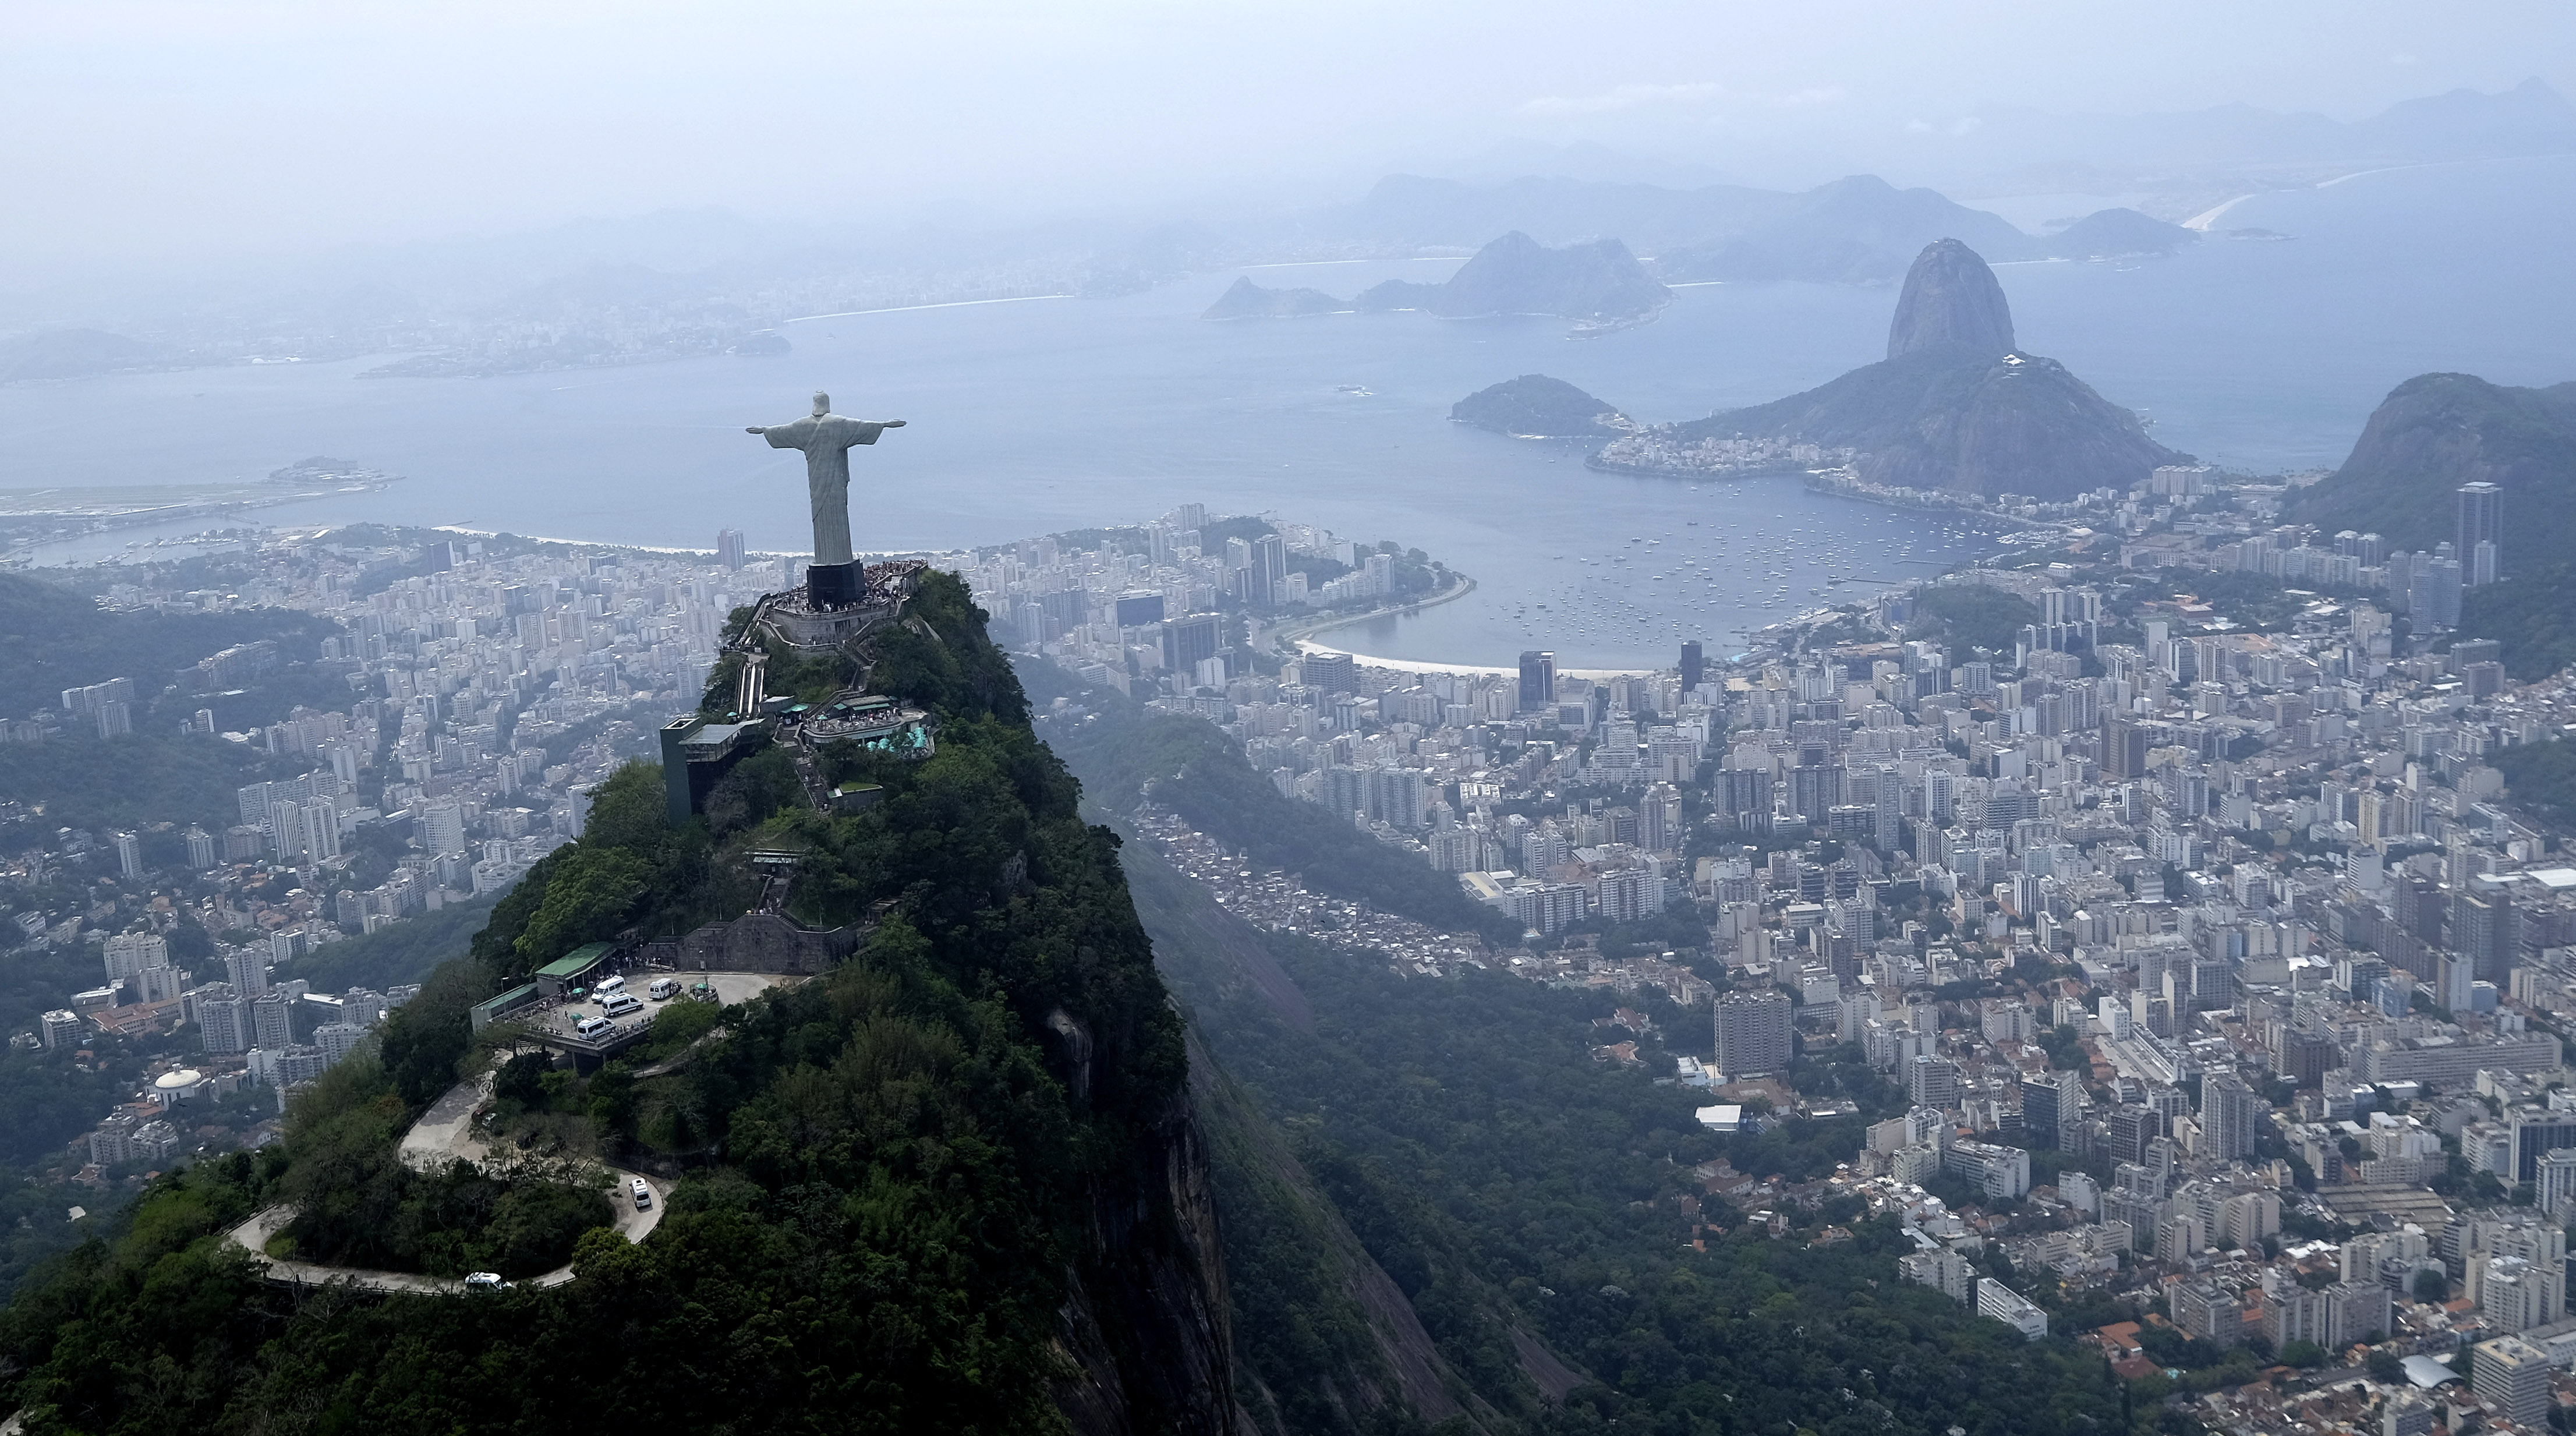 FILE - In this Oct. 9, 2015, file photo, the Christ the Redeemer statue is shown in this aerial view of Rio de Janeiro,Braizl. Organizing committee spokesman Mario Andrada said on Tuesday, Jan, 19, 2016, that they are disappointed with ticket sales with O